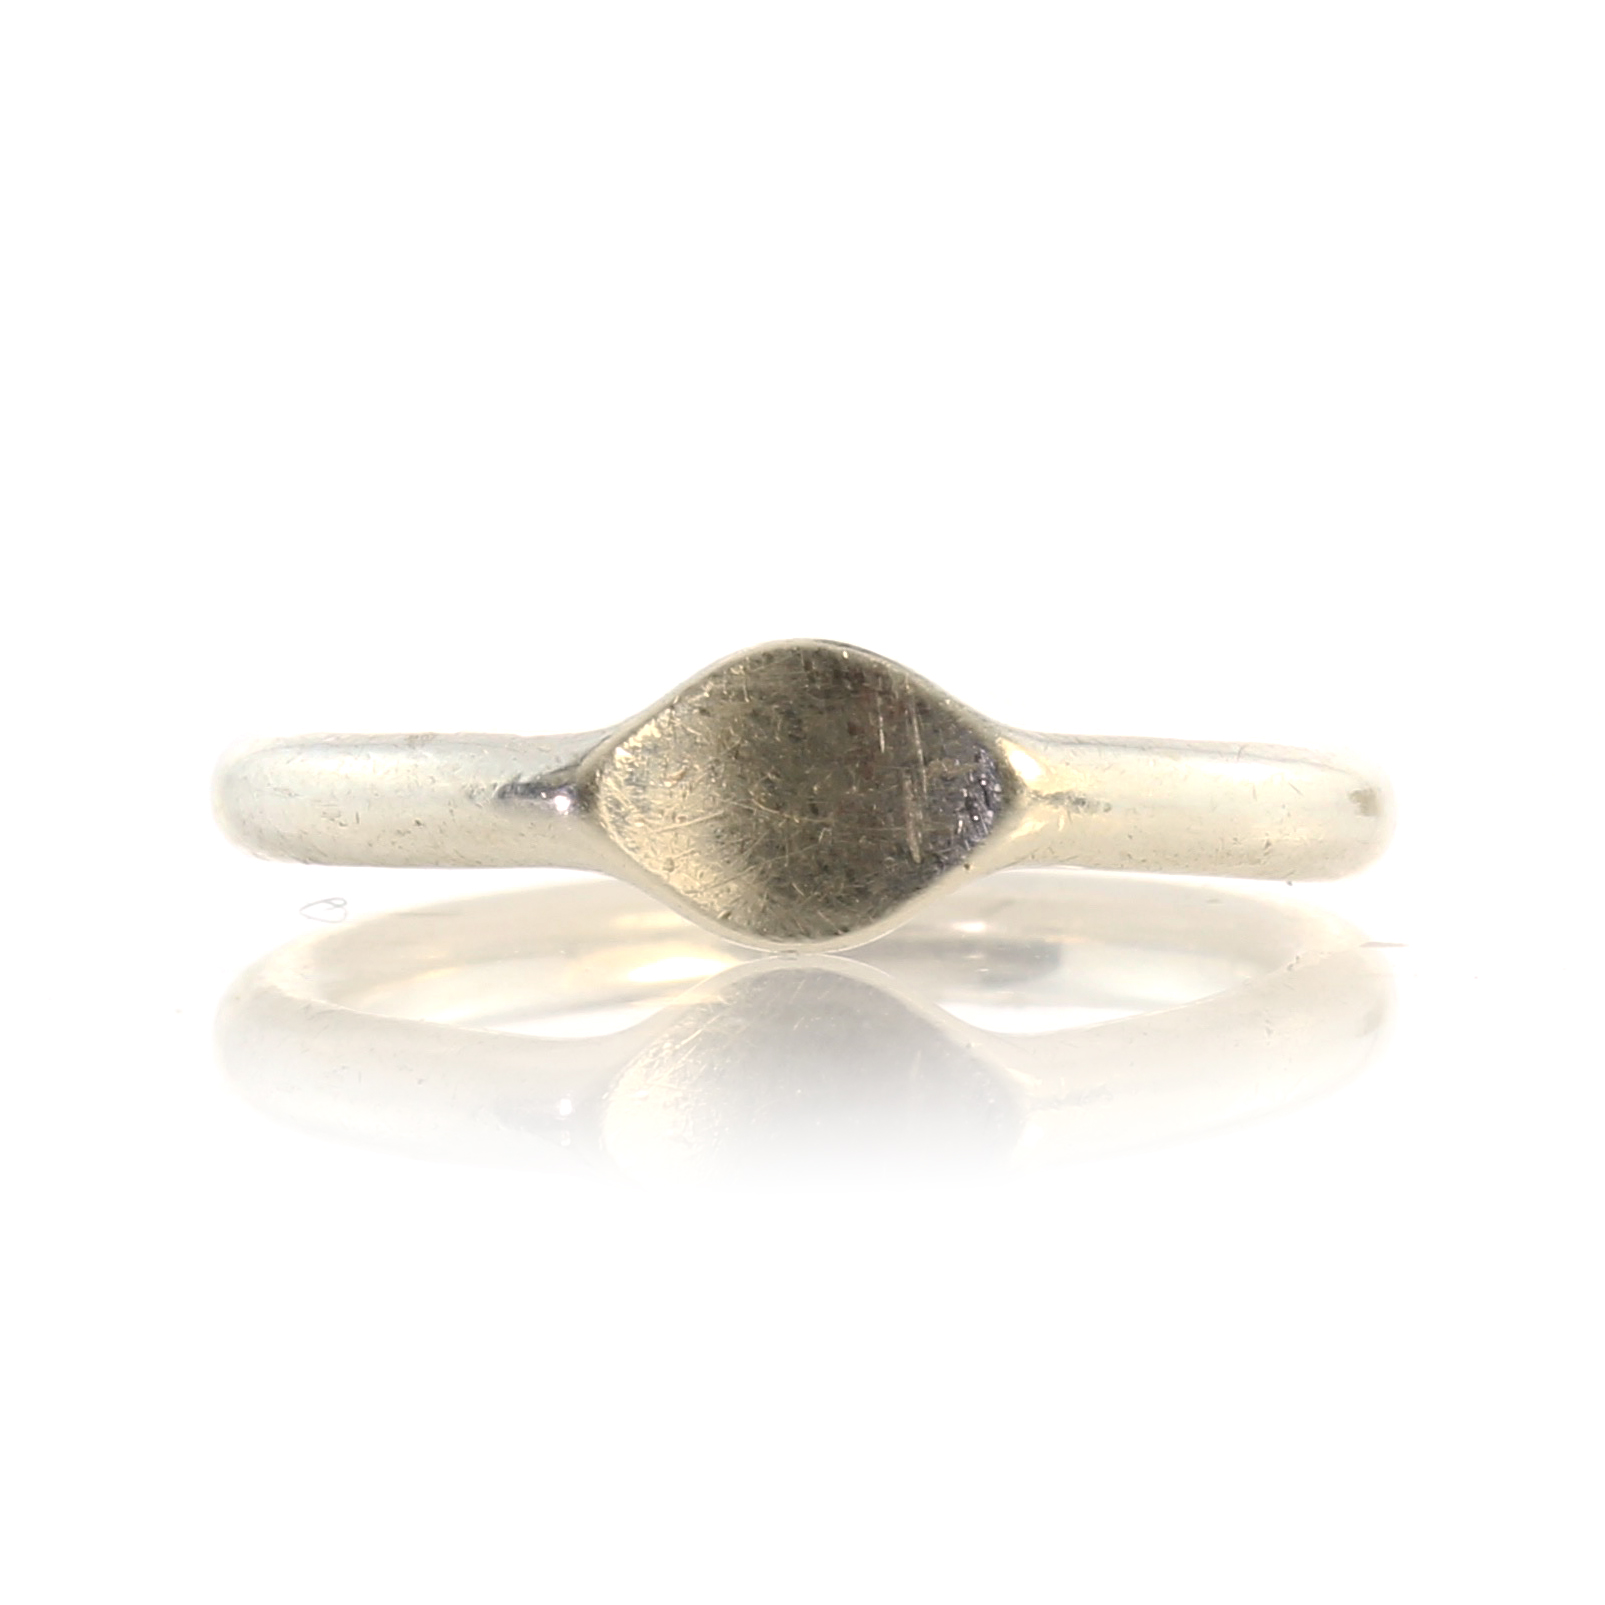 Los 129 - GEORG JENSEN A vintage Danish silver ring by Georg Jensen designed as a plain band with flattened